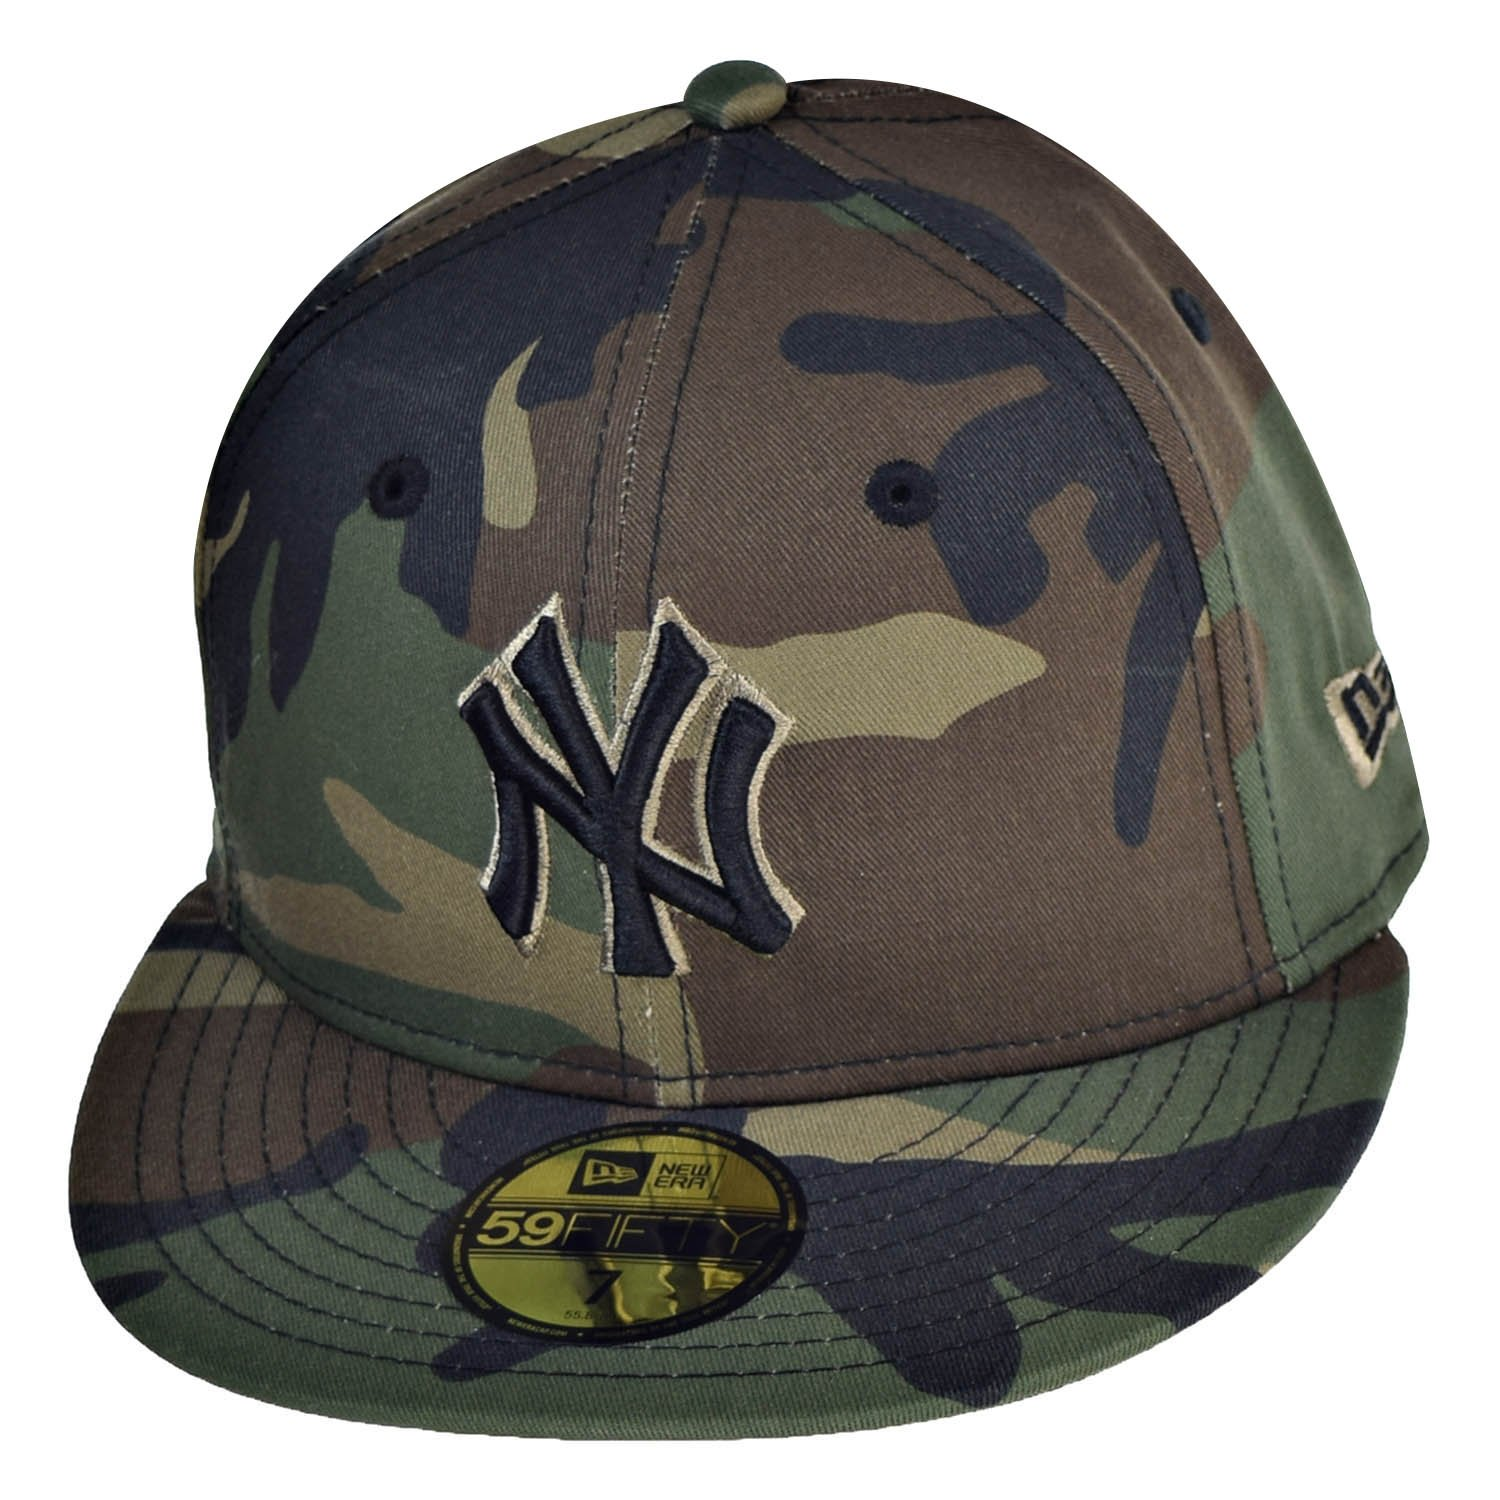 New Era New York Yankees 59Fifty Men s Fitted Hat Cap Camo Black 70387062  (Size 7) at Amazon Men s Clothing store  af9fe091f2c